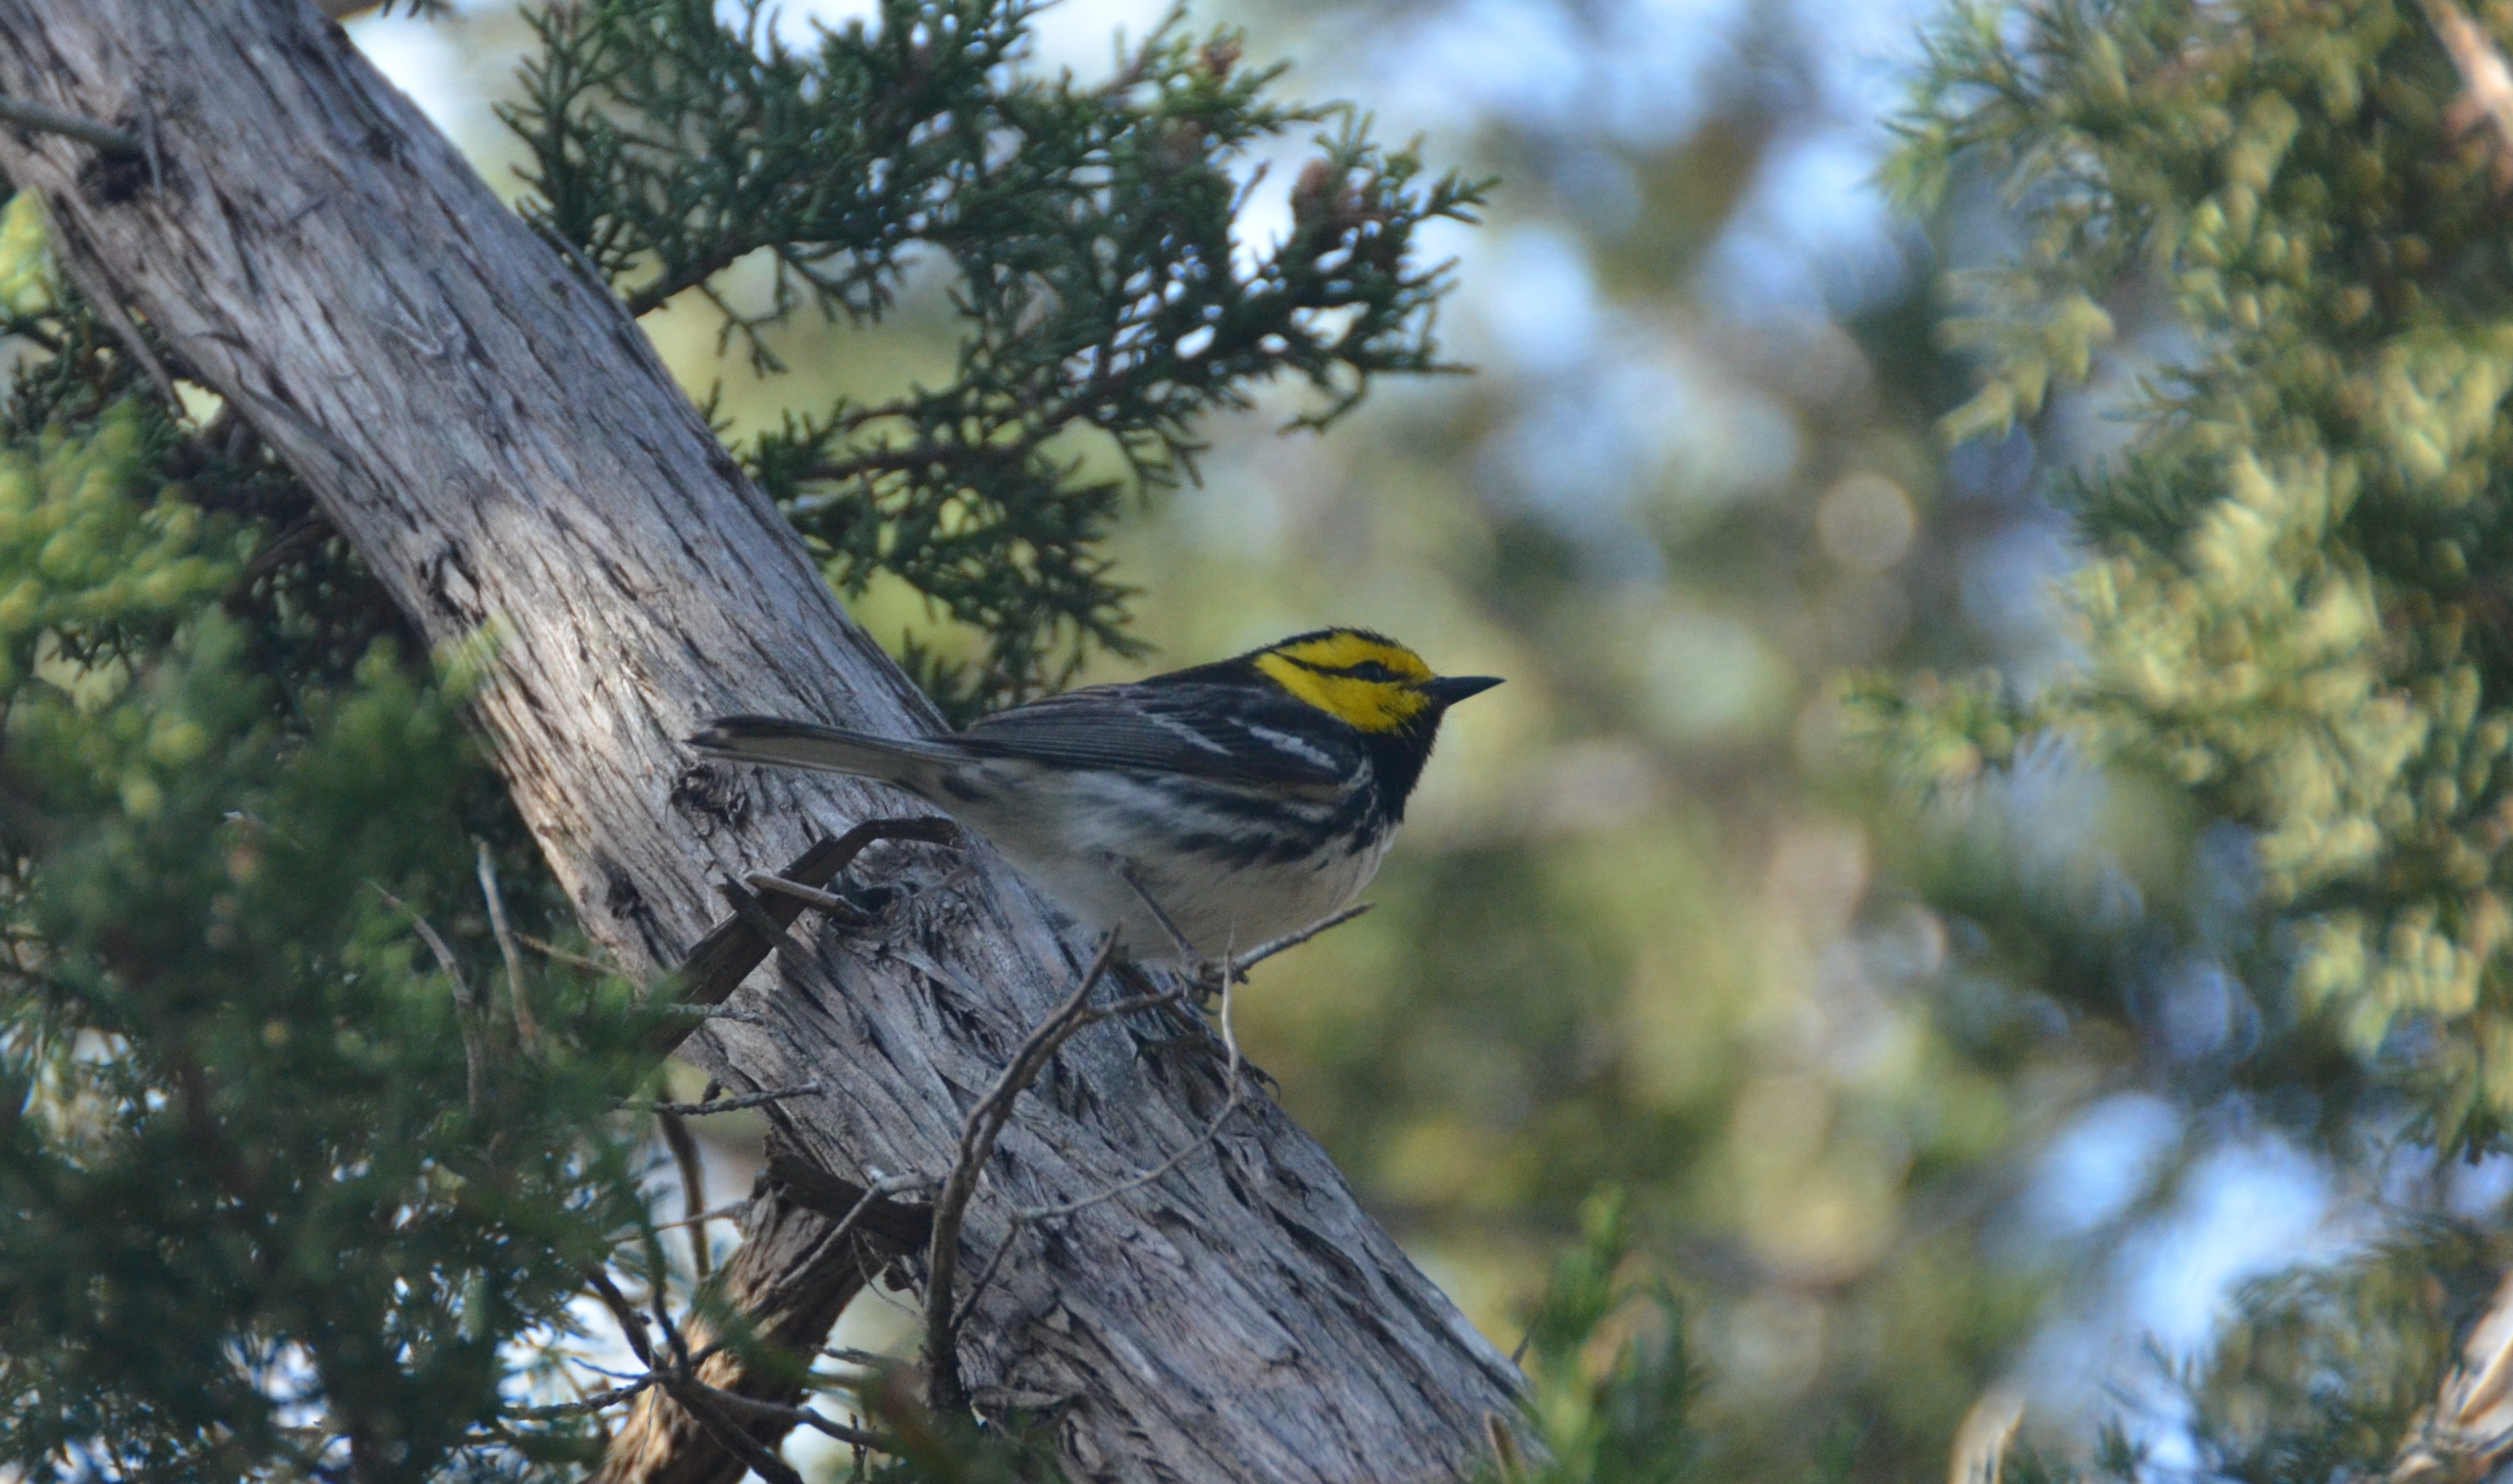 Golden-cheeked Warblers return to the Hill Country